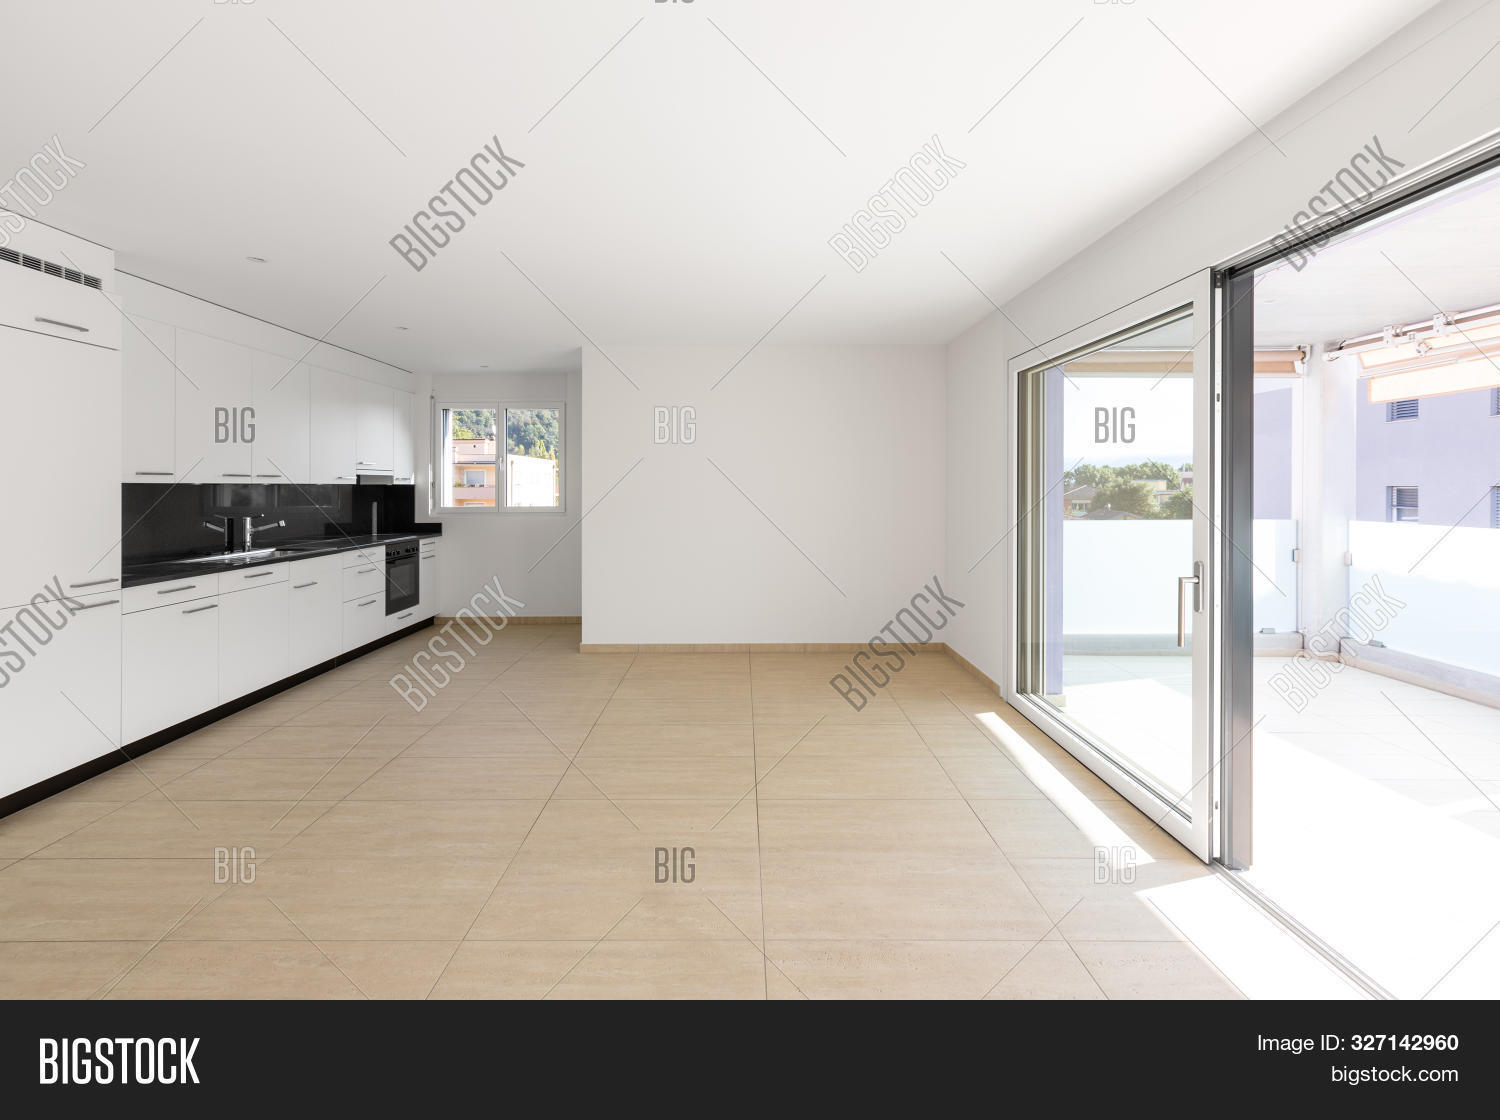 Empty Room White Walls Image Photo Free Trial Bigstock